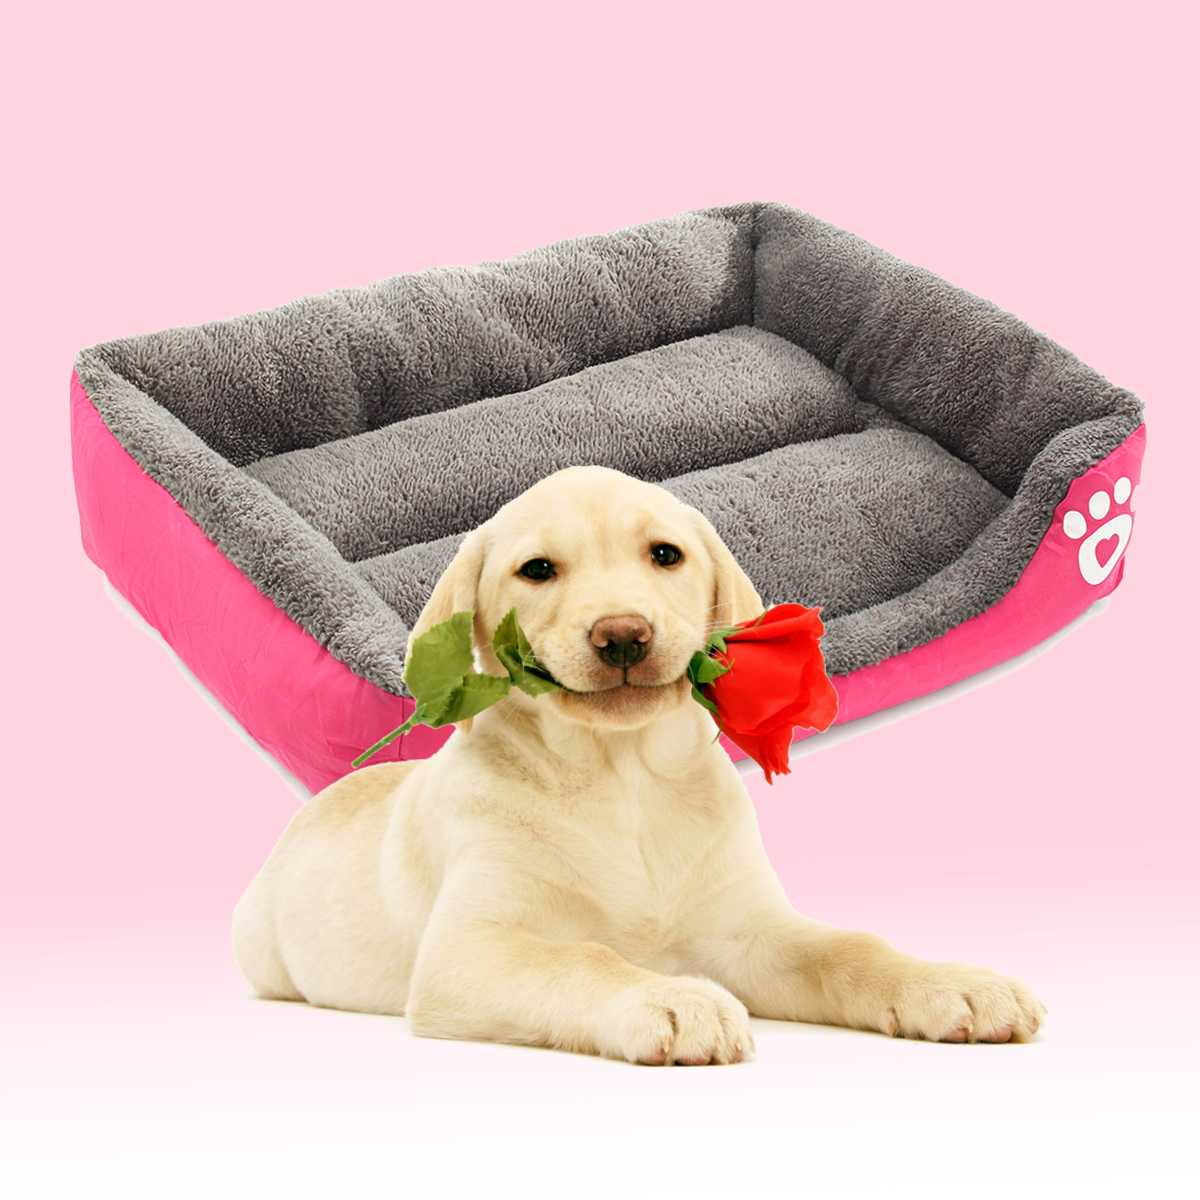 New Dog Bed Mat Kennel Soft Dog Puppy Pet Supplies Nest For Small Medium Dogs Winter Warm Plush Bed House Waterproof Cloth